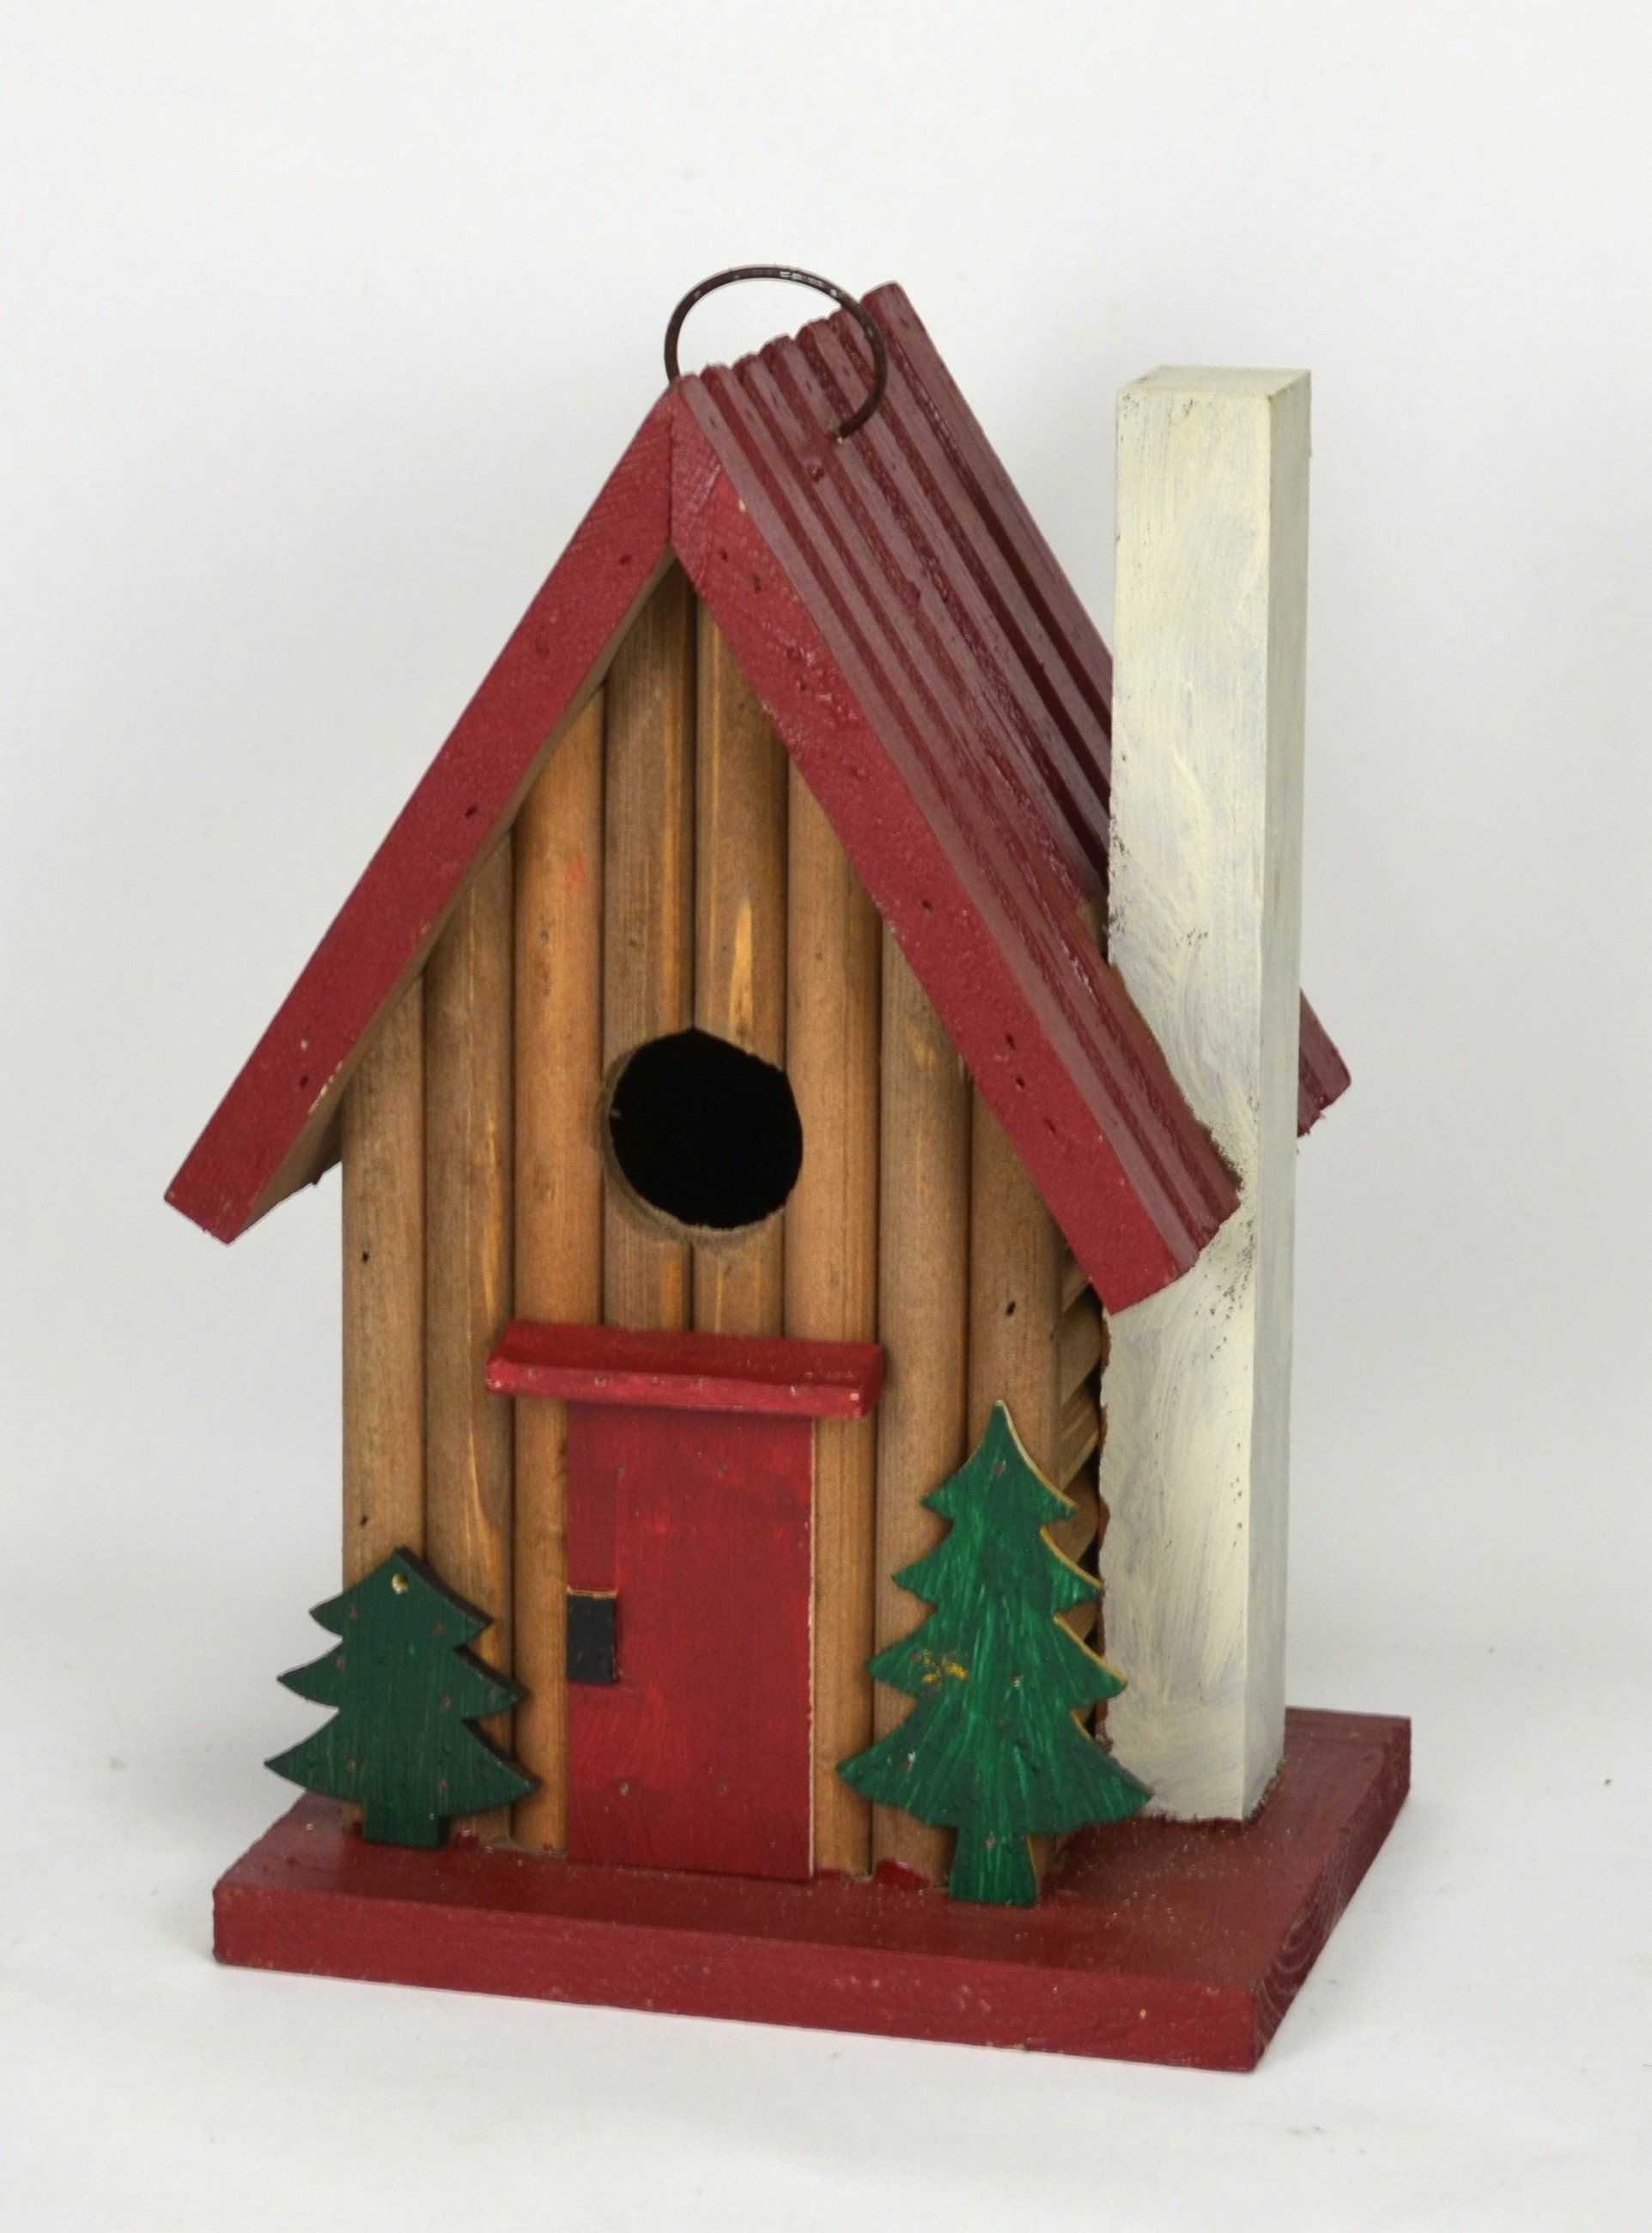 Stylish Yet Functional Birdhouses That Birds Love Adds Charm To Your Backyard Built In Hanging System Bird Safe Lead Free Paint And Easy Clean Out